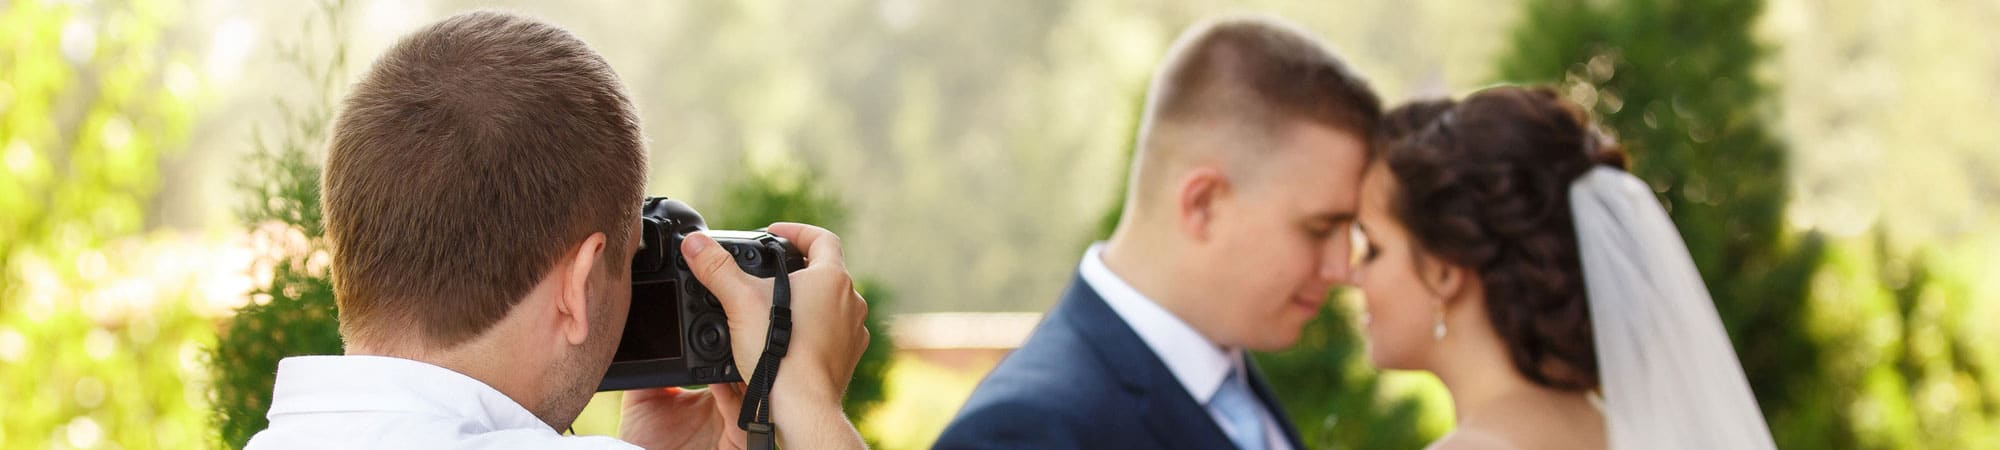 5 Questions to Ask When Comparing Wedding Venues